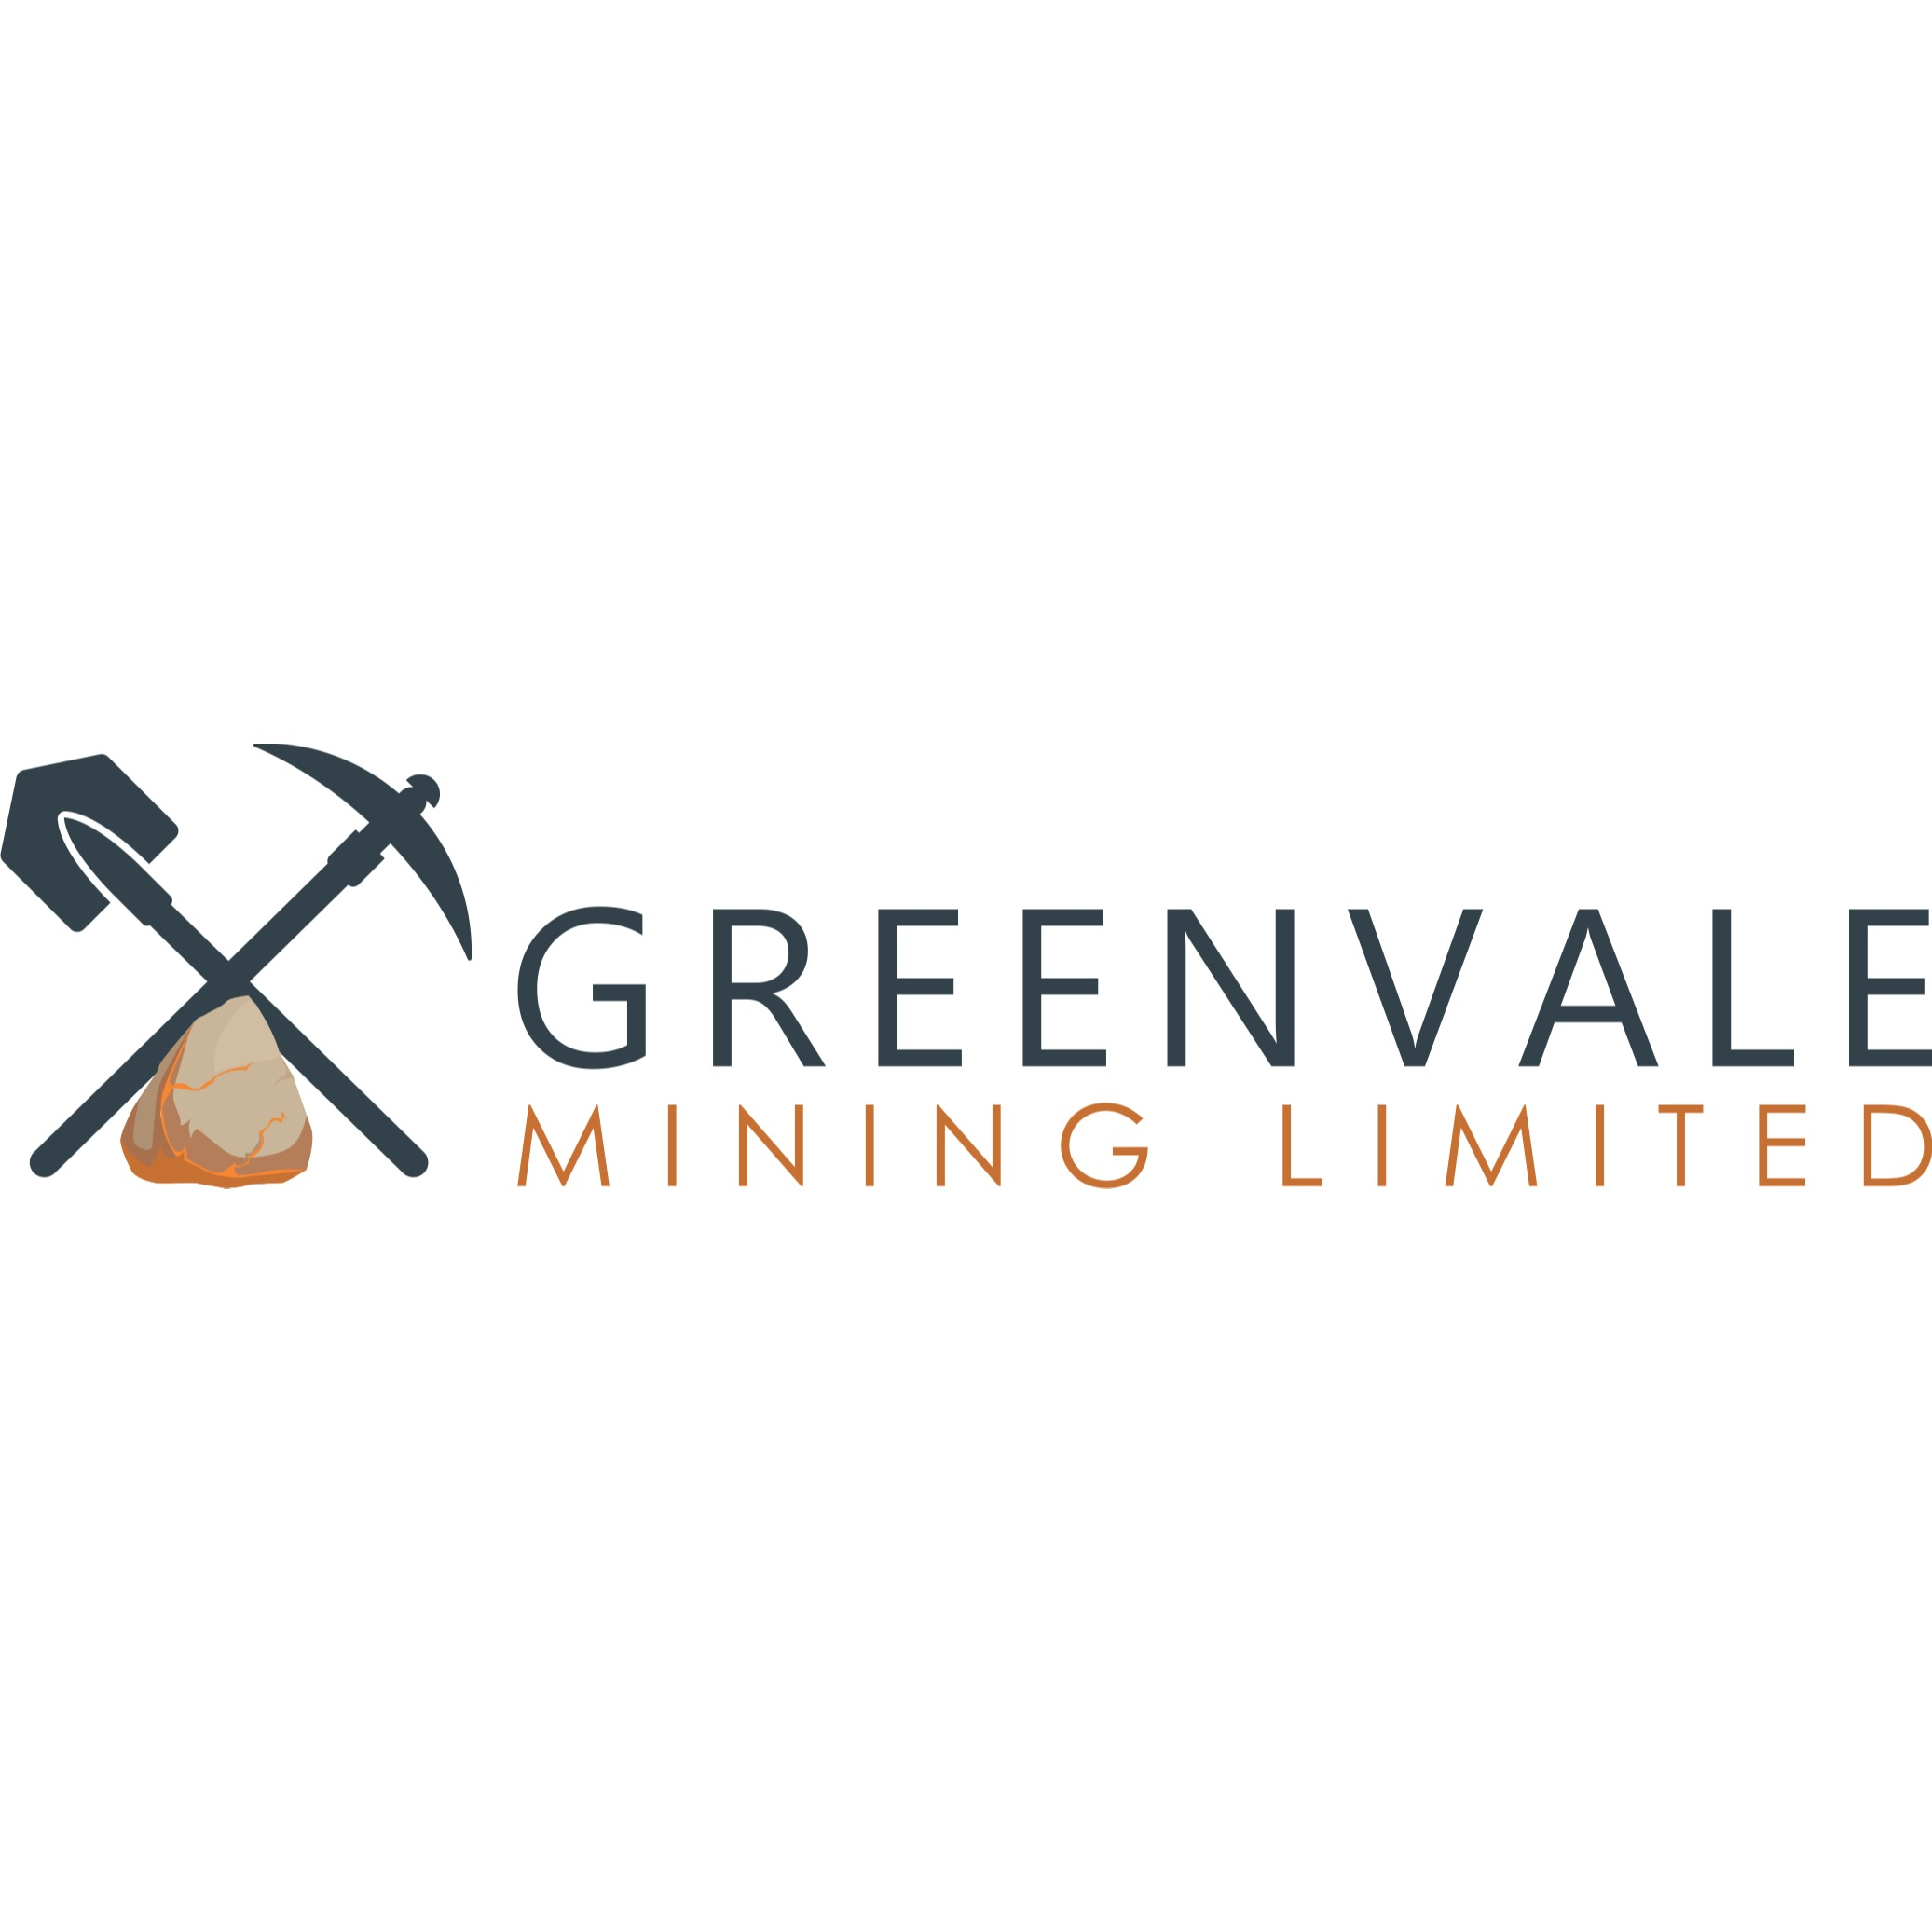 Greenvale Mining Limited